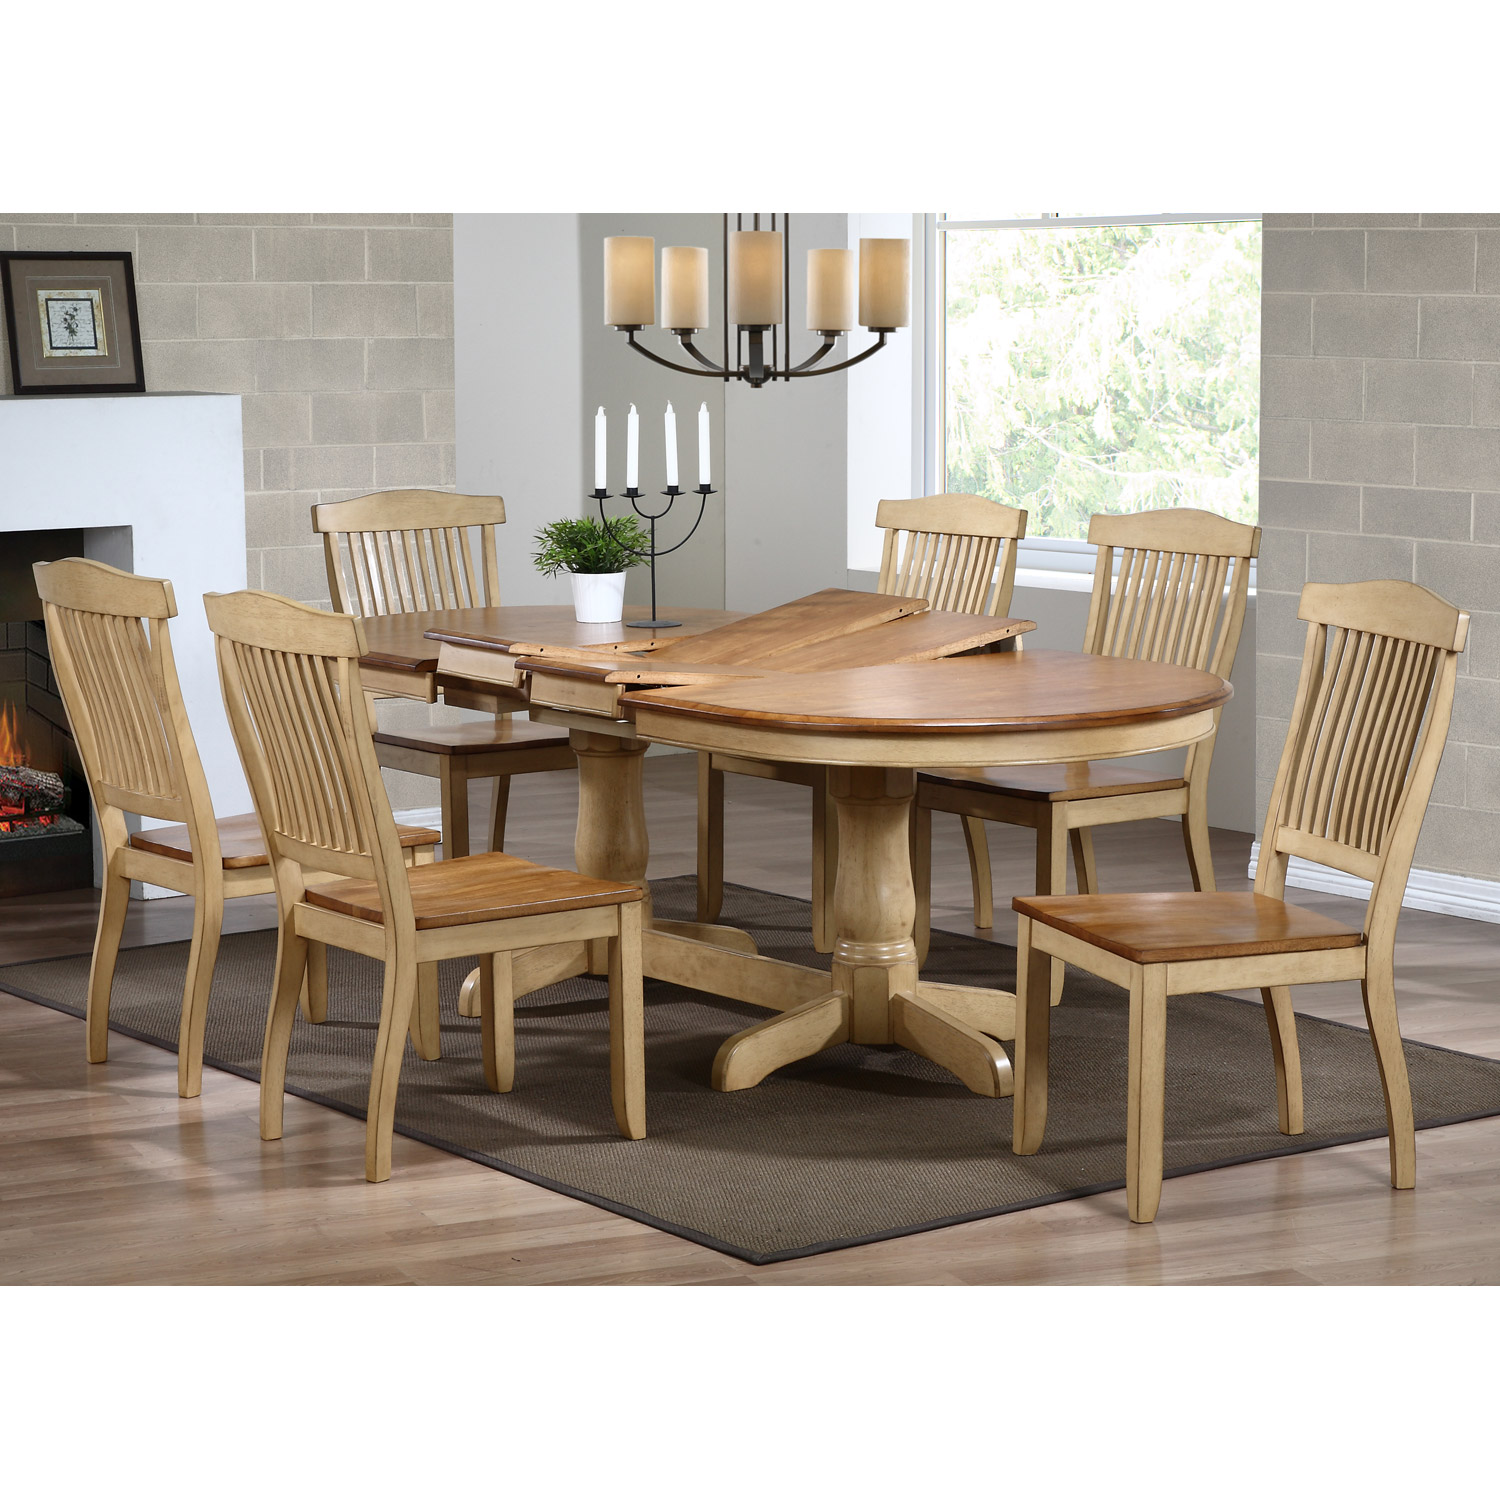 ... Gatsby Oval Dining Table   Double Butterfly Leaf, Honey U0026 Sand    ICON OV90